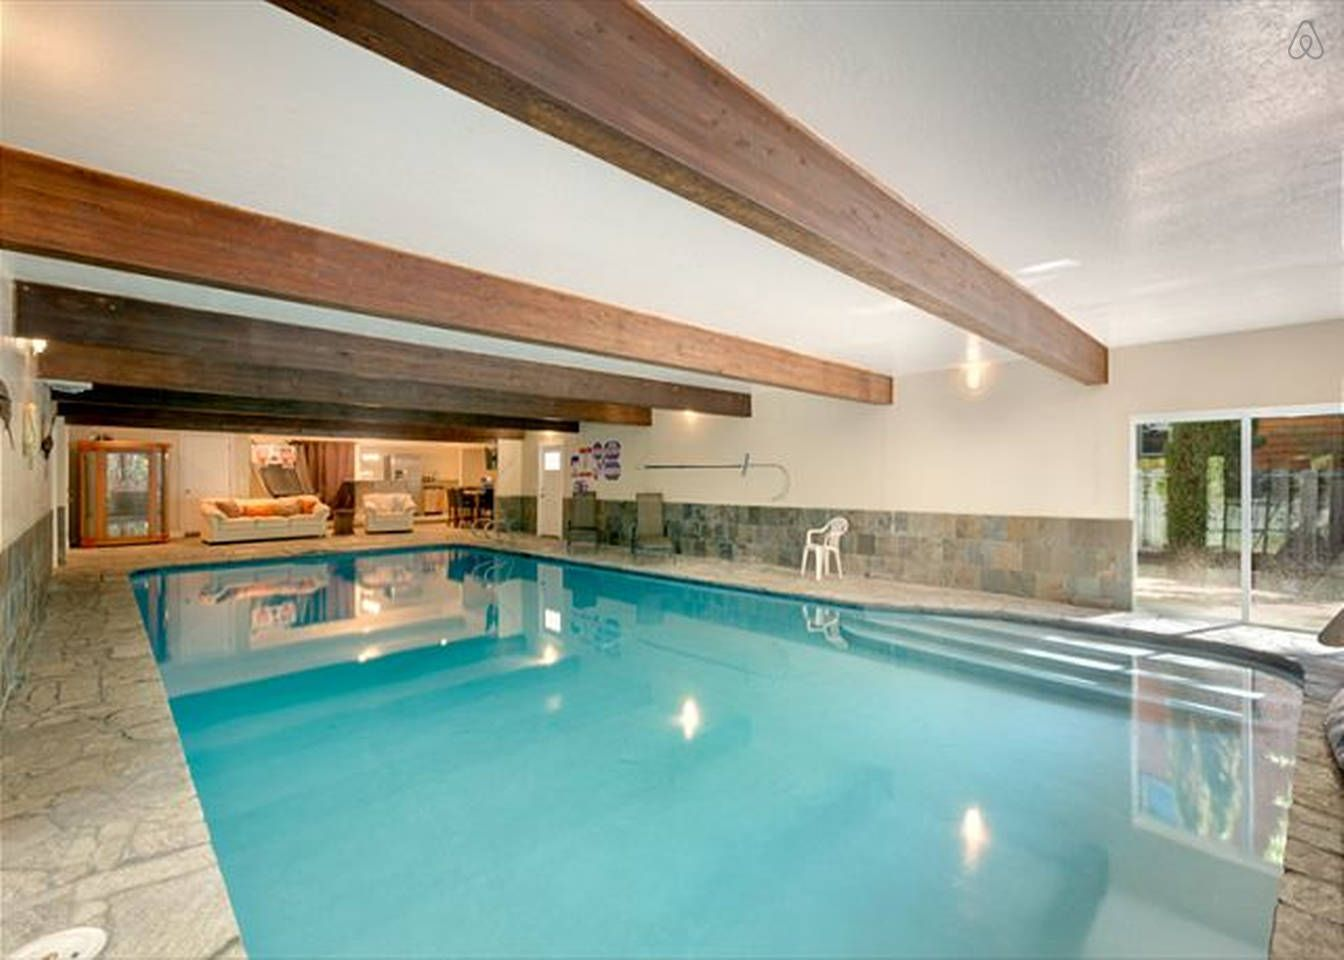 5 Br 4 Ba With Largest Indoor Pool In Zephyr Cove Vacation Home Indoor Pool House Rental